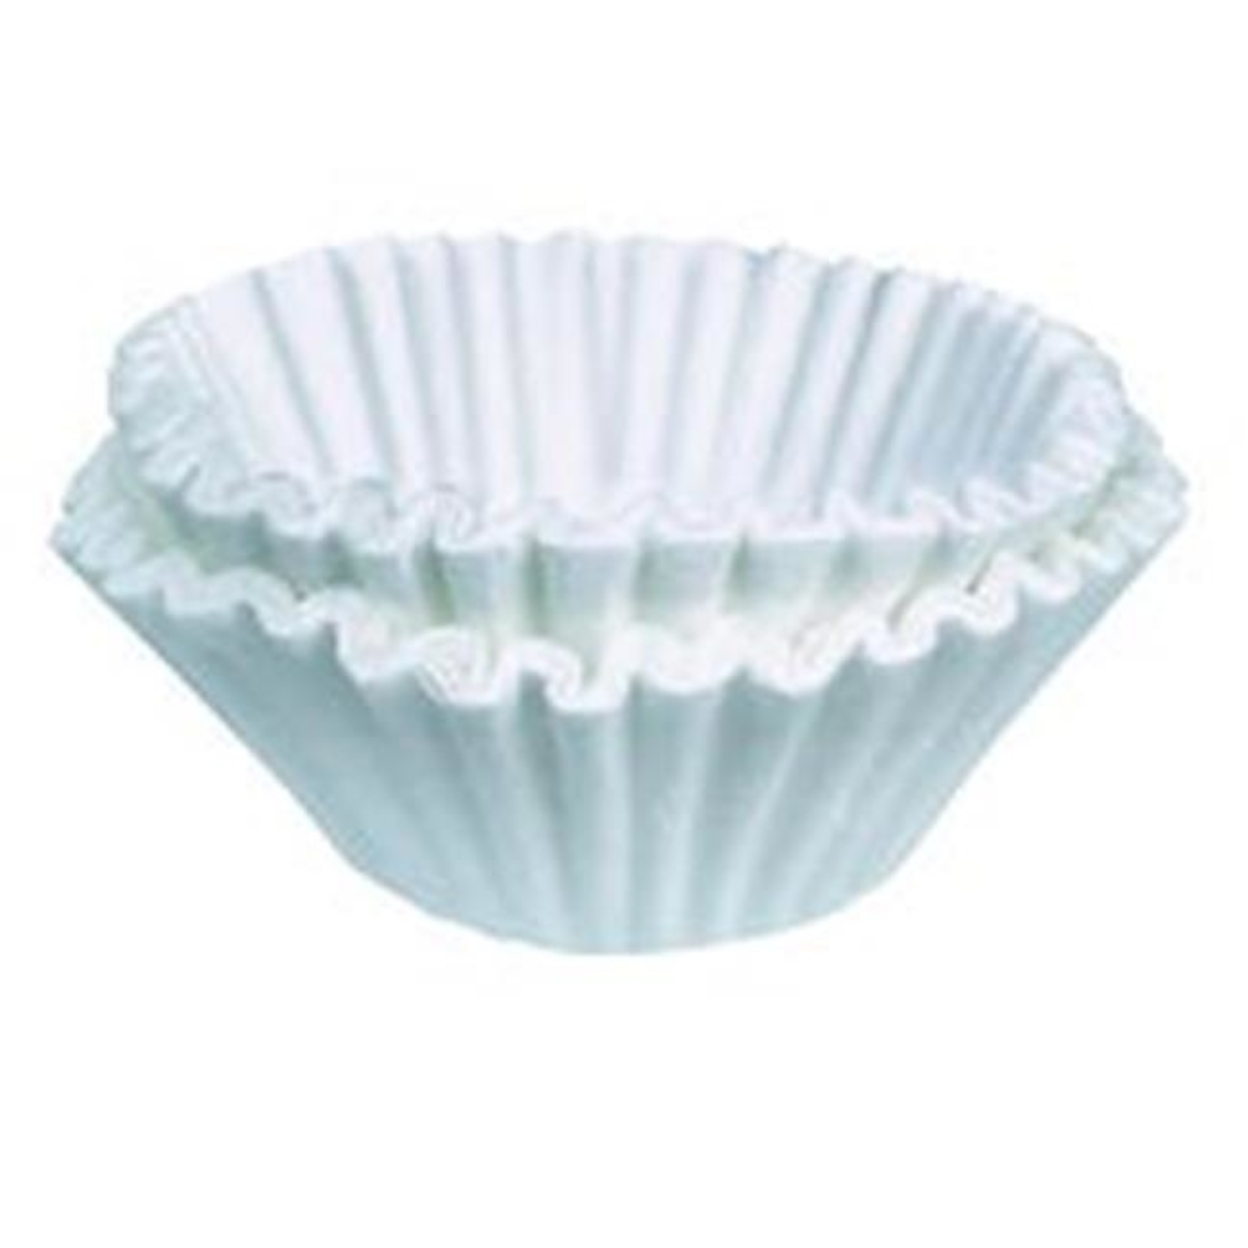 Bunn-O-Matic 6Gal21X9 Commercial Coffee Filters 6-Gallon Urn Style 250-Pack 5a3d64eae2246116f76023a2